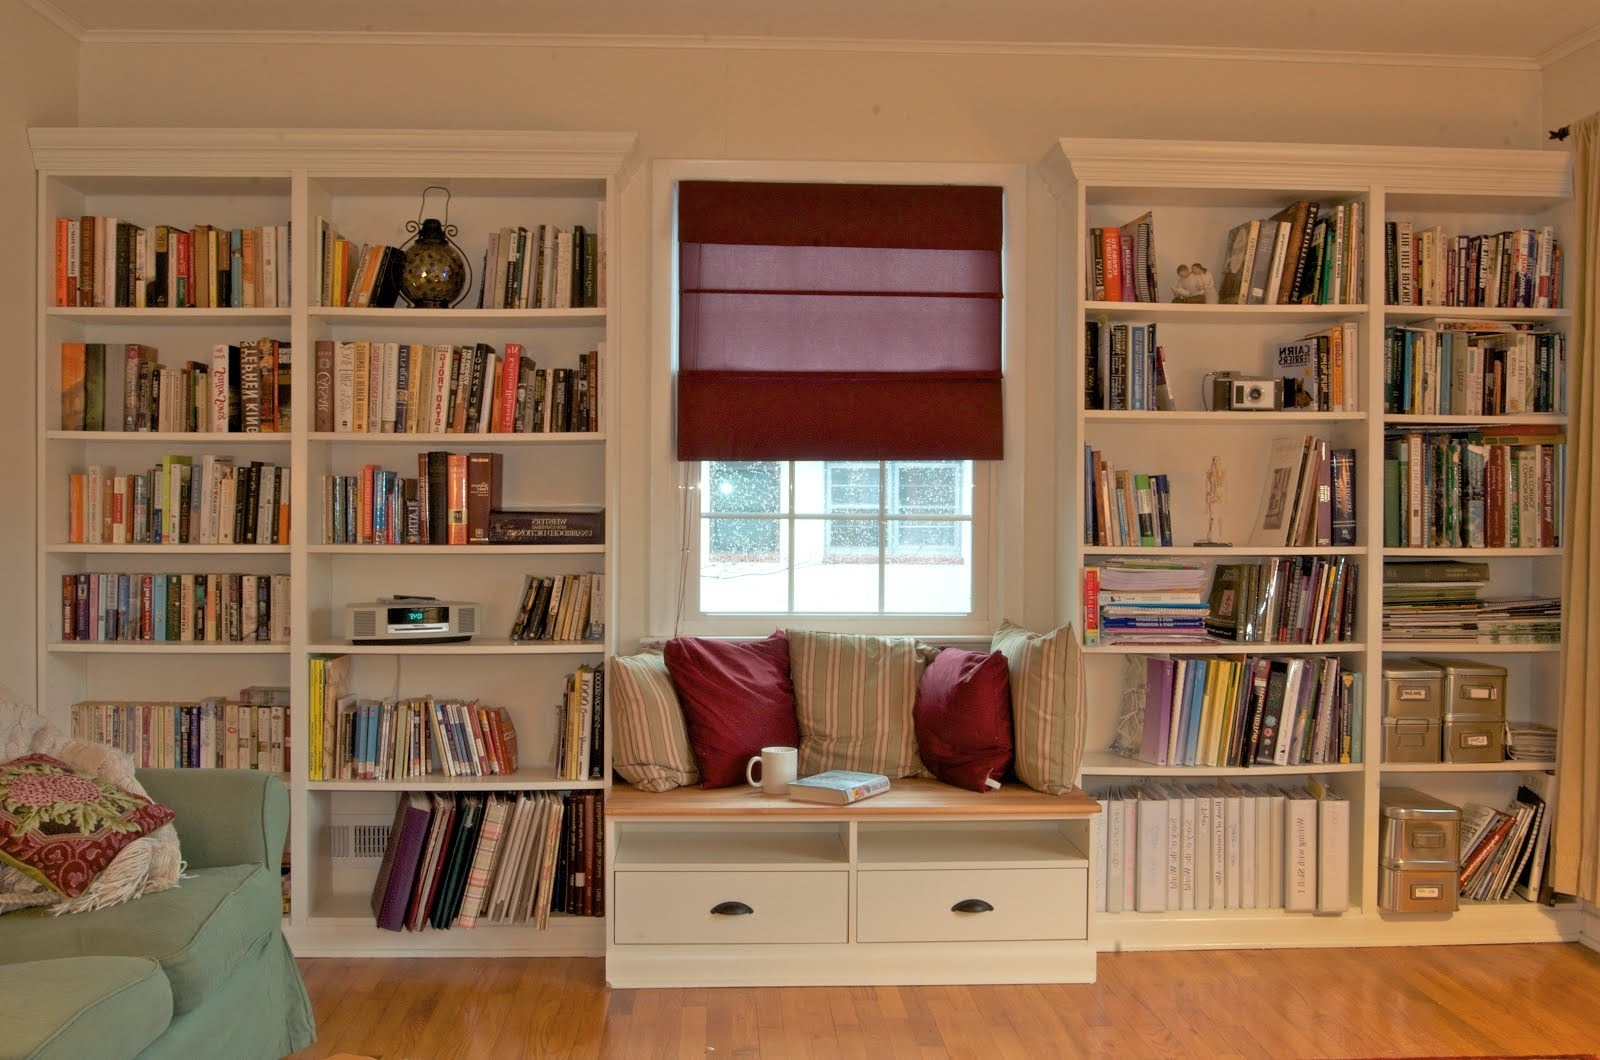 Built In Bookcases For 2018 Built In Bookshelves With Window Seat For Under $350 – Ikea Hackers (View 3 of 15)